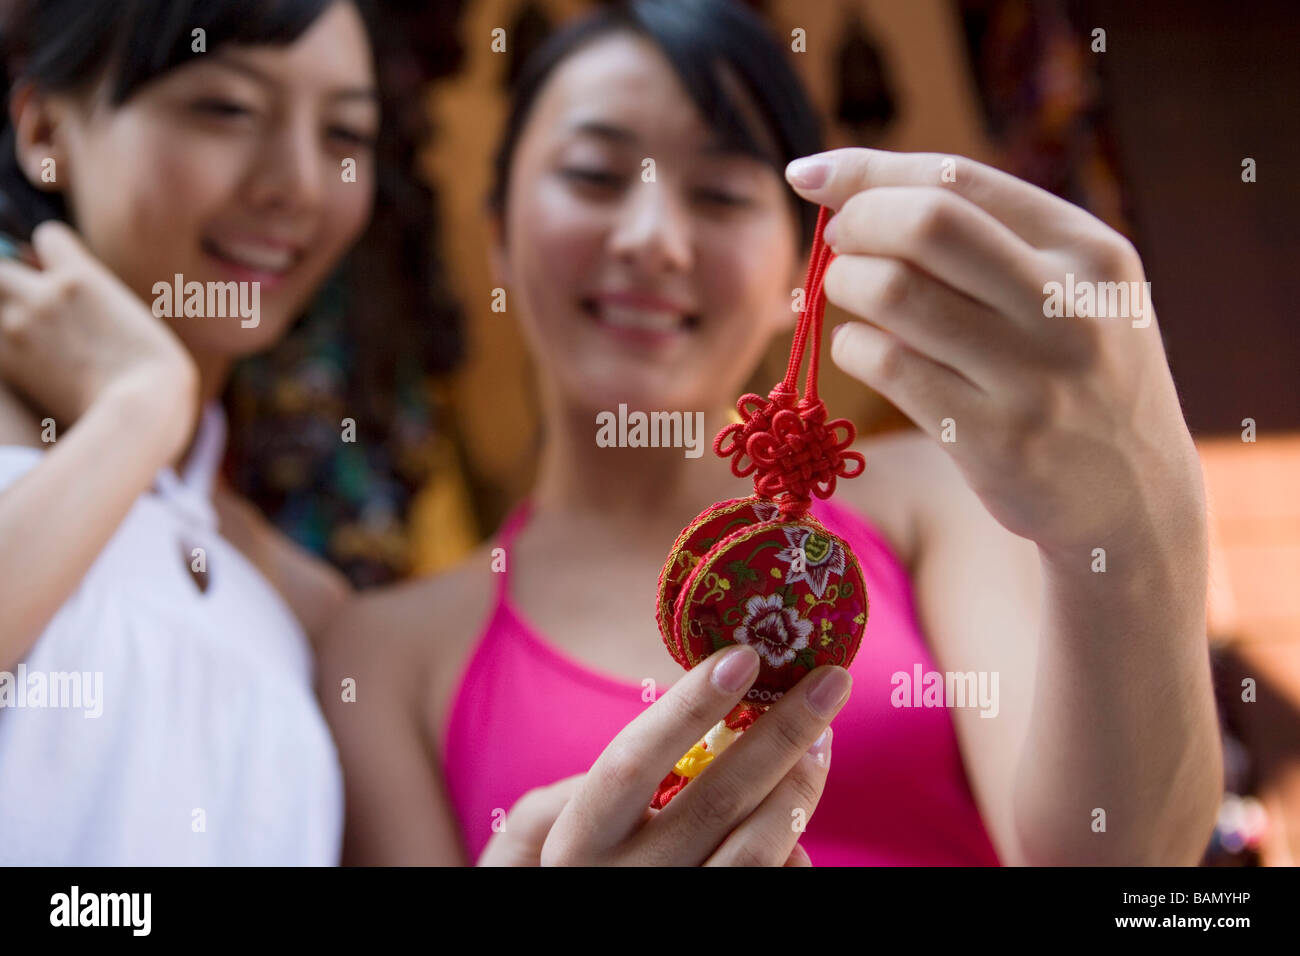 Two young friends shop for souvenirs - Stock Image